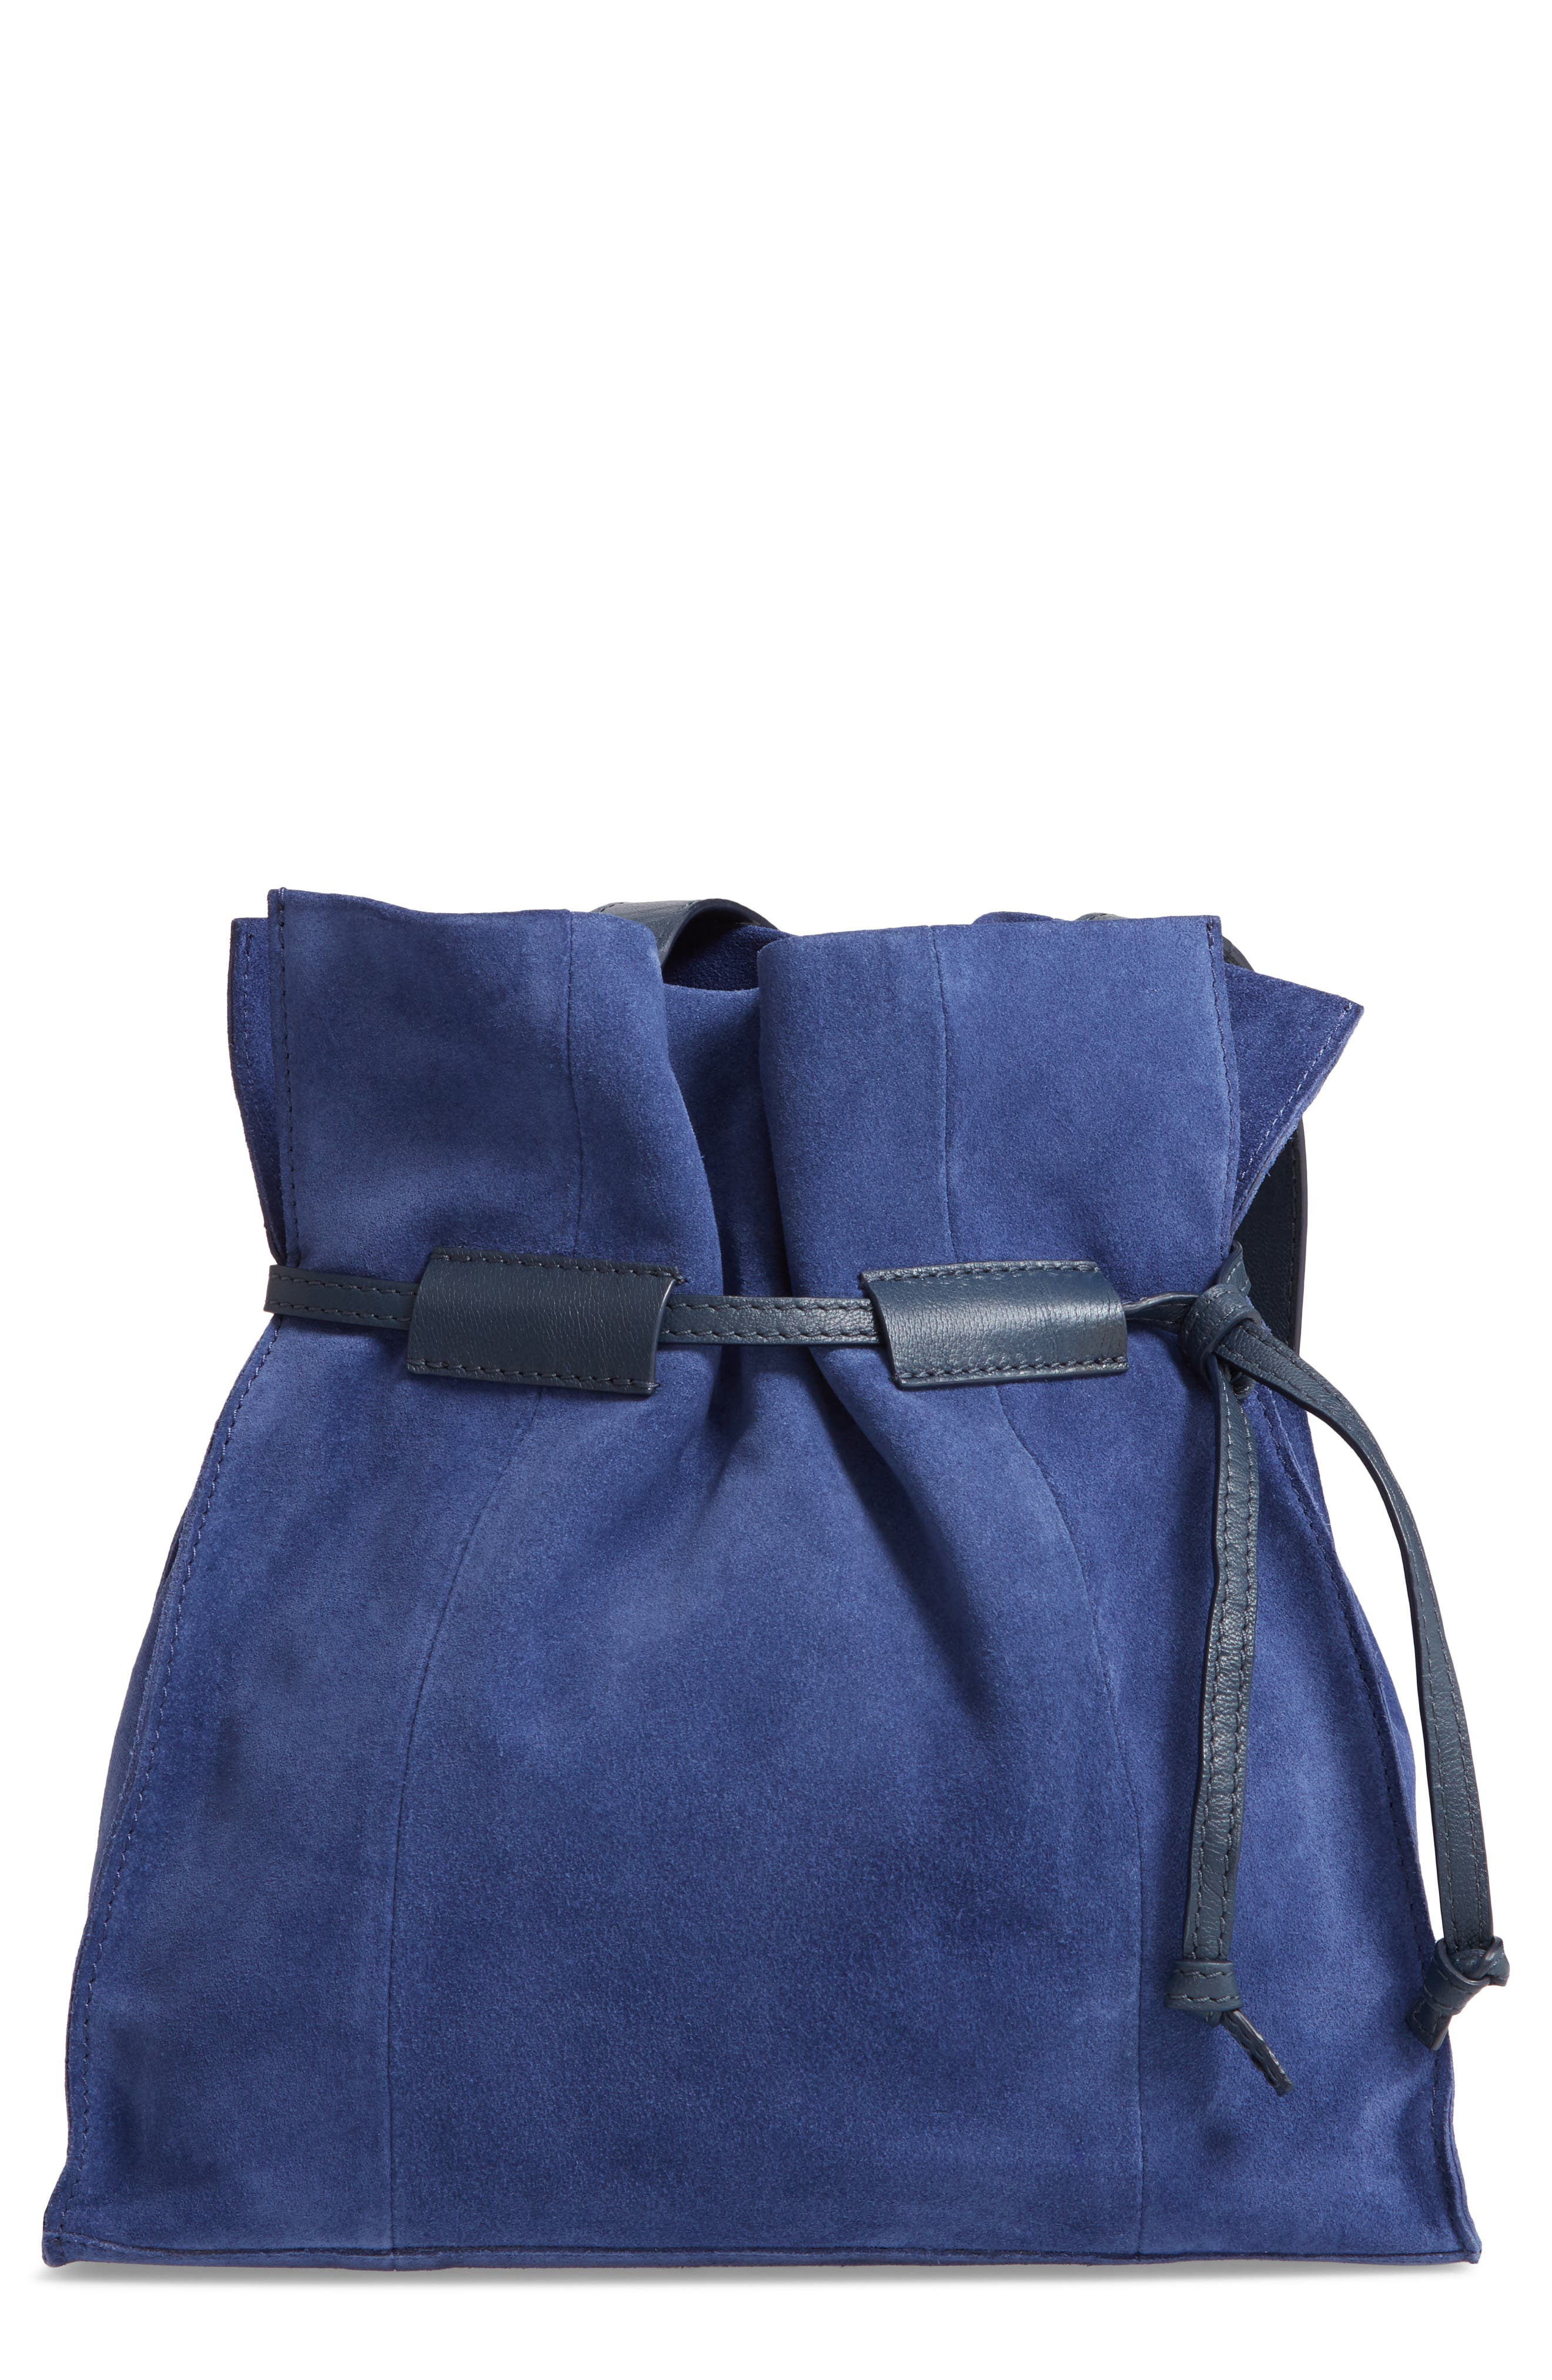 Pull String Faux Leather Bucket Bag,                             Main thumbnail 1, color,                             BLUE